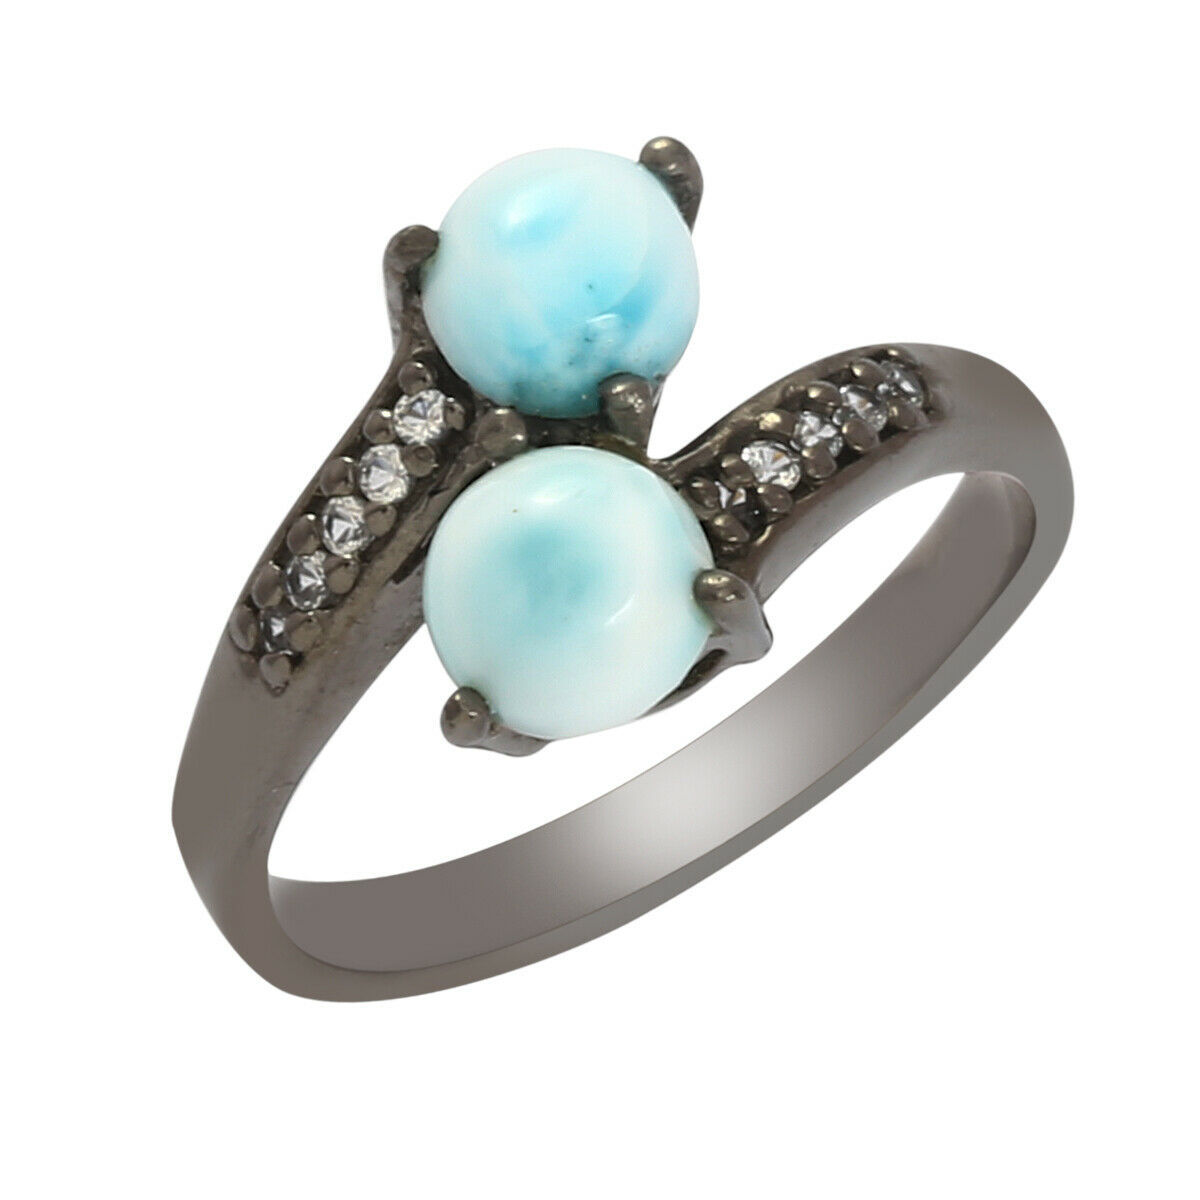 Primary image for Bypass Shank 925 Fine Silver 1.78 Ct Larimar Gemstone Black Plated Women Ring